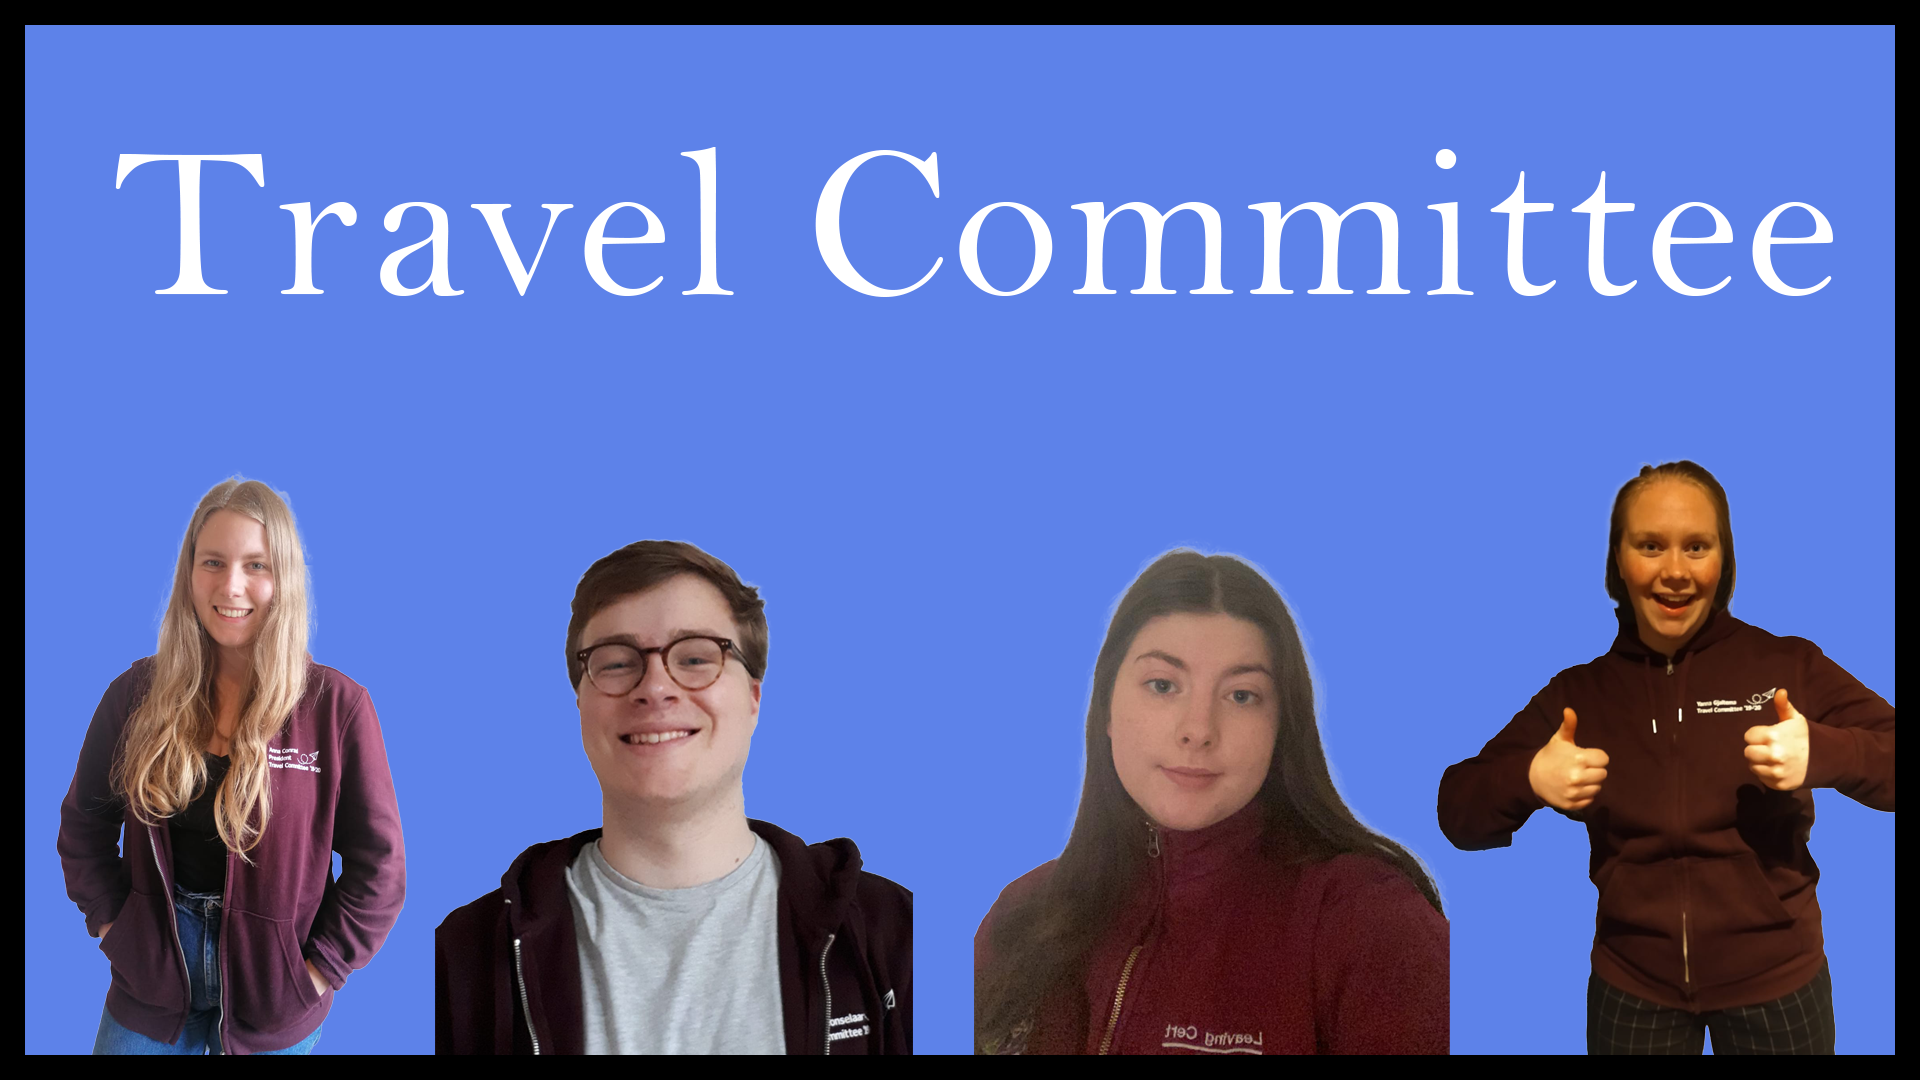 Committee Picture Travel